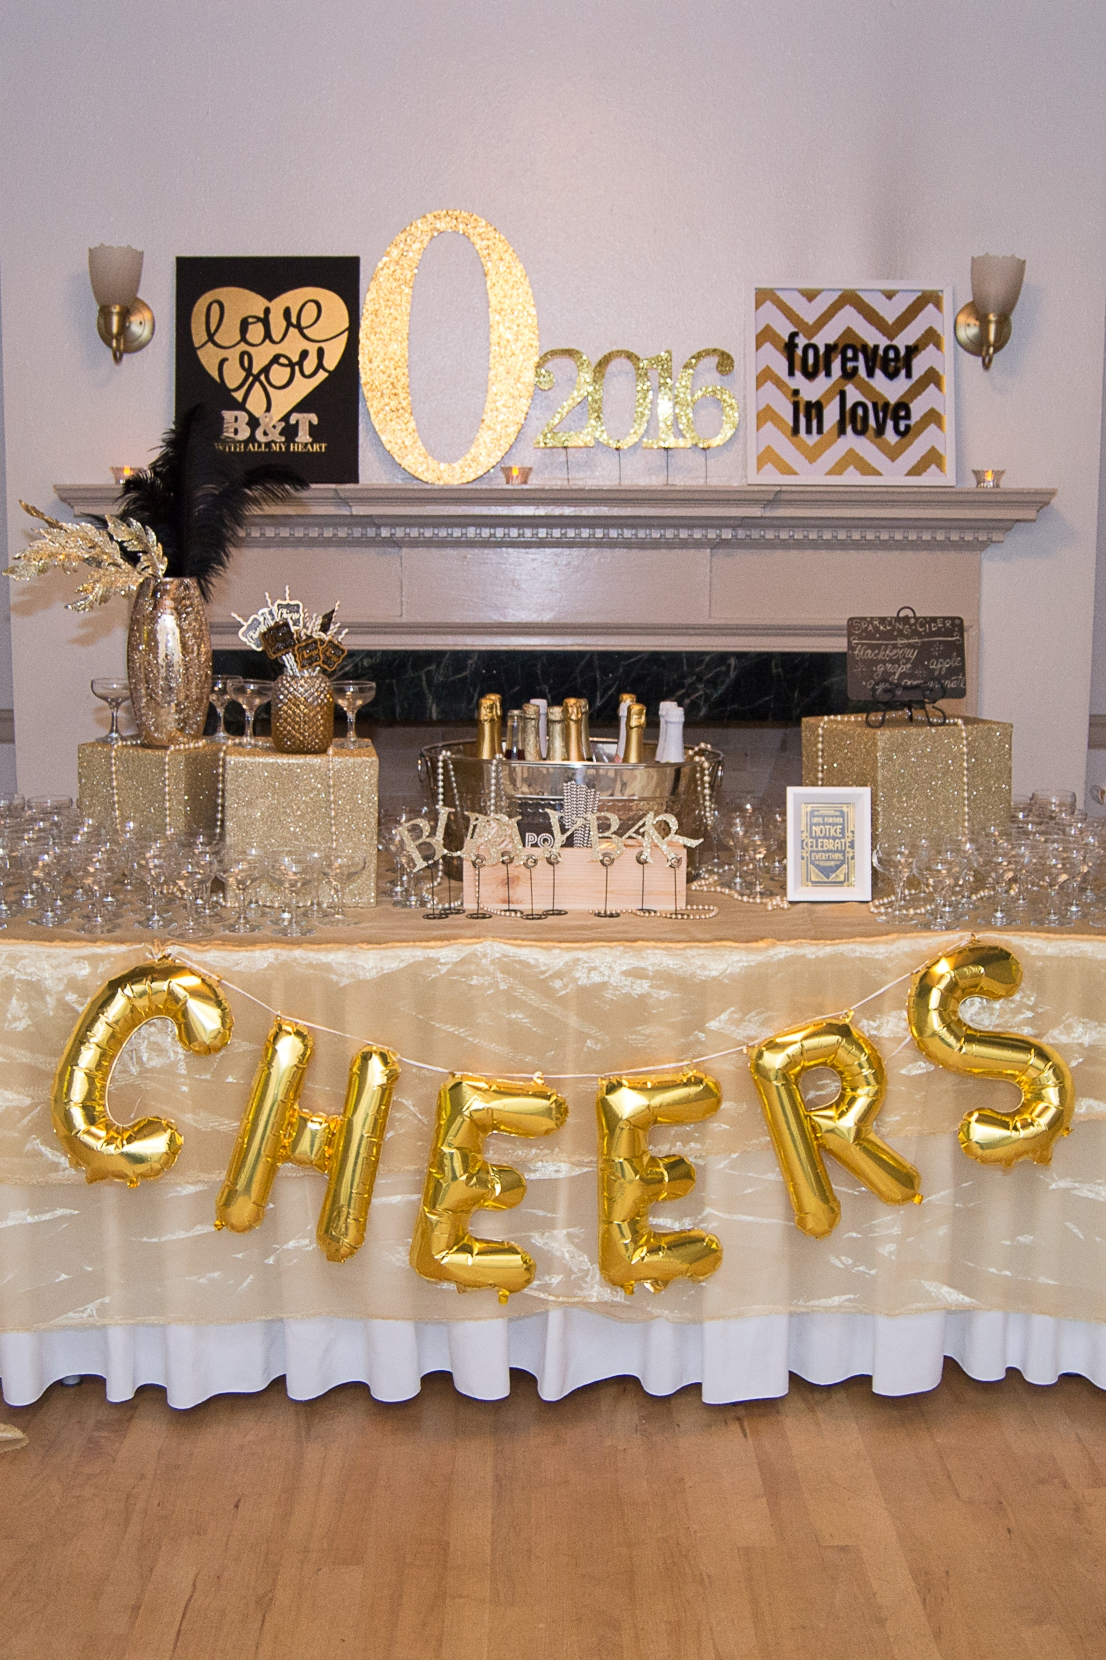 A 'Bubbly Bar' welcomed guests as they entered the reception.